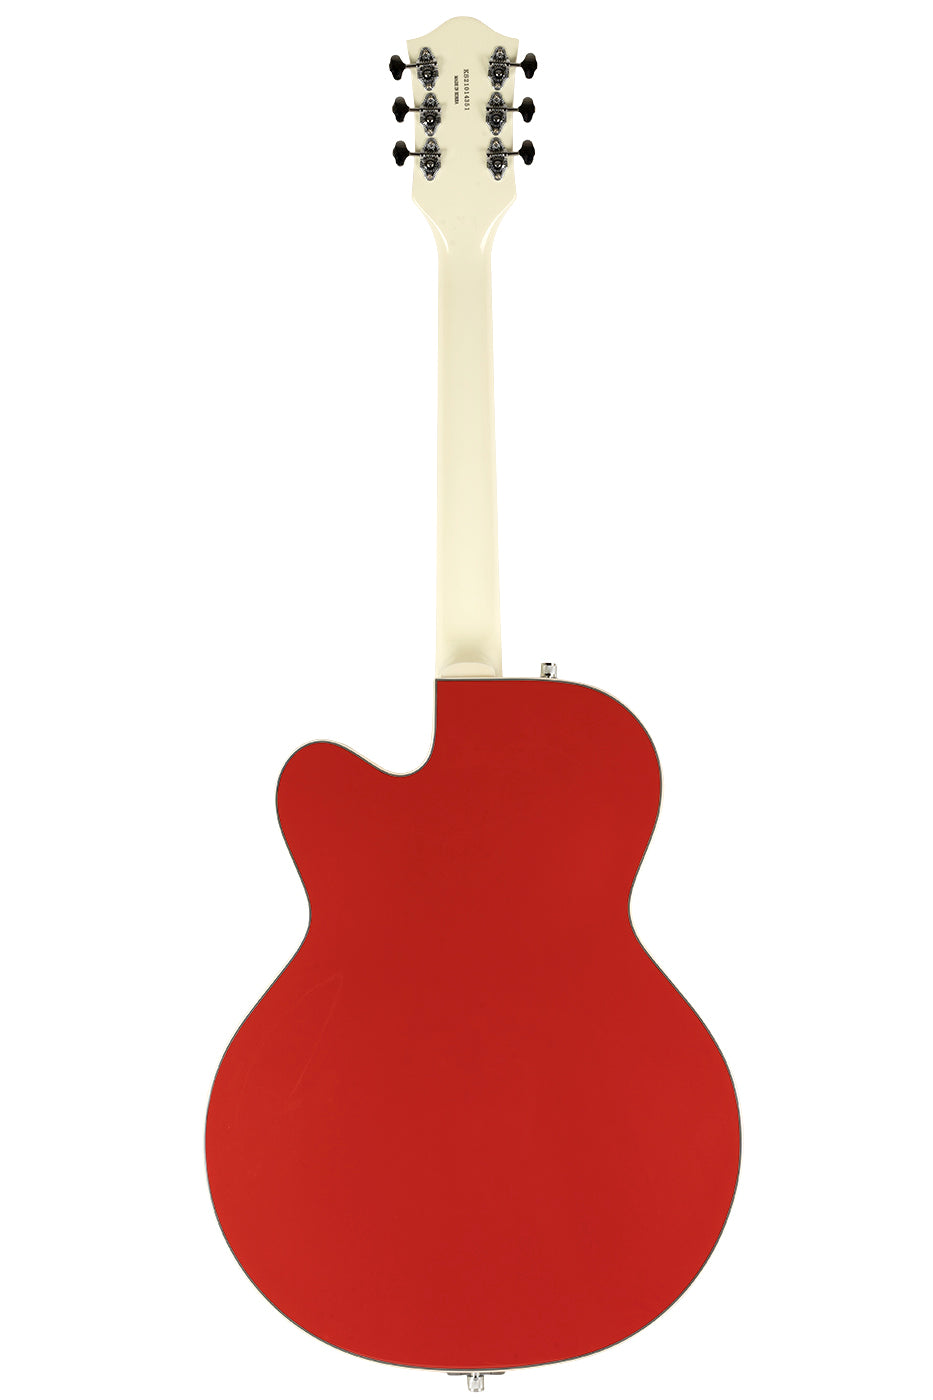 Used 2021 Gretsch G5410T Tri-Five Limited Two-Tone Fiesta Red & Vintage White image 8